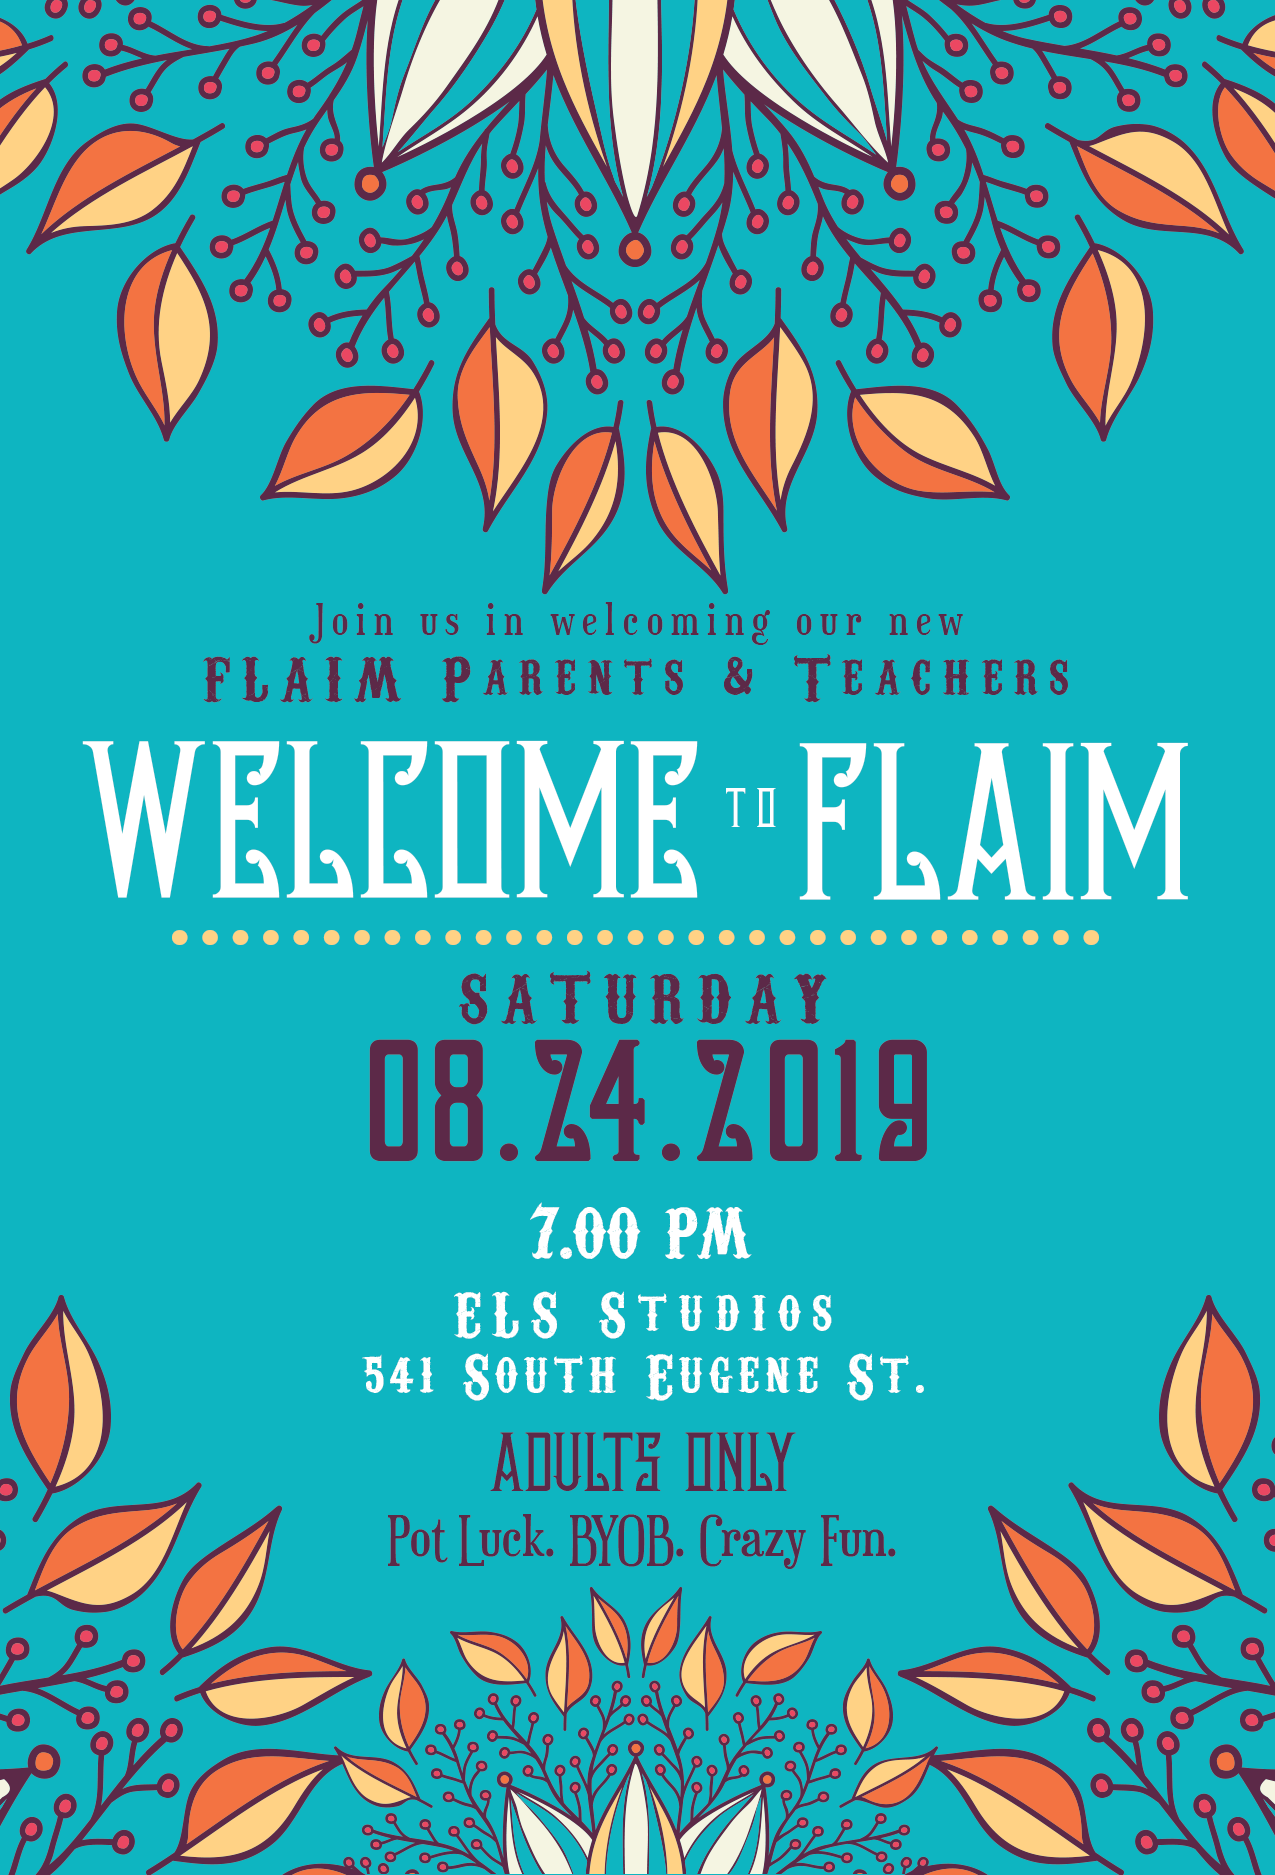 FLAIM_WelcomeSocial_Invitation_FINAL_081219.png